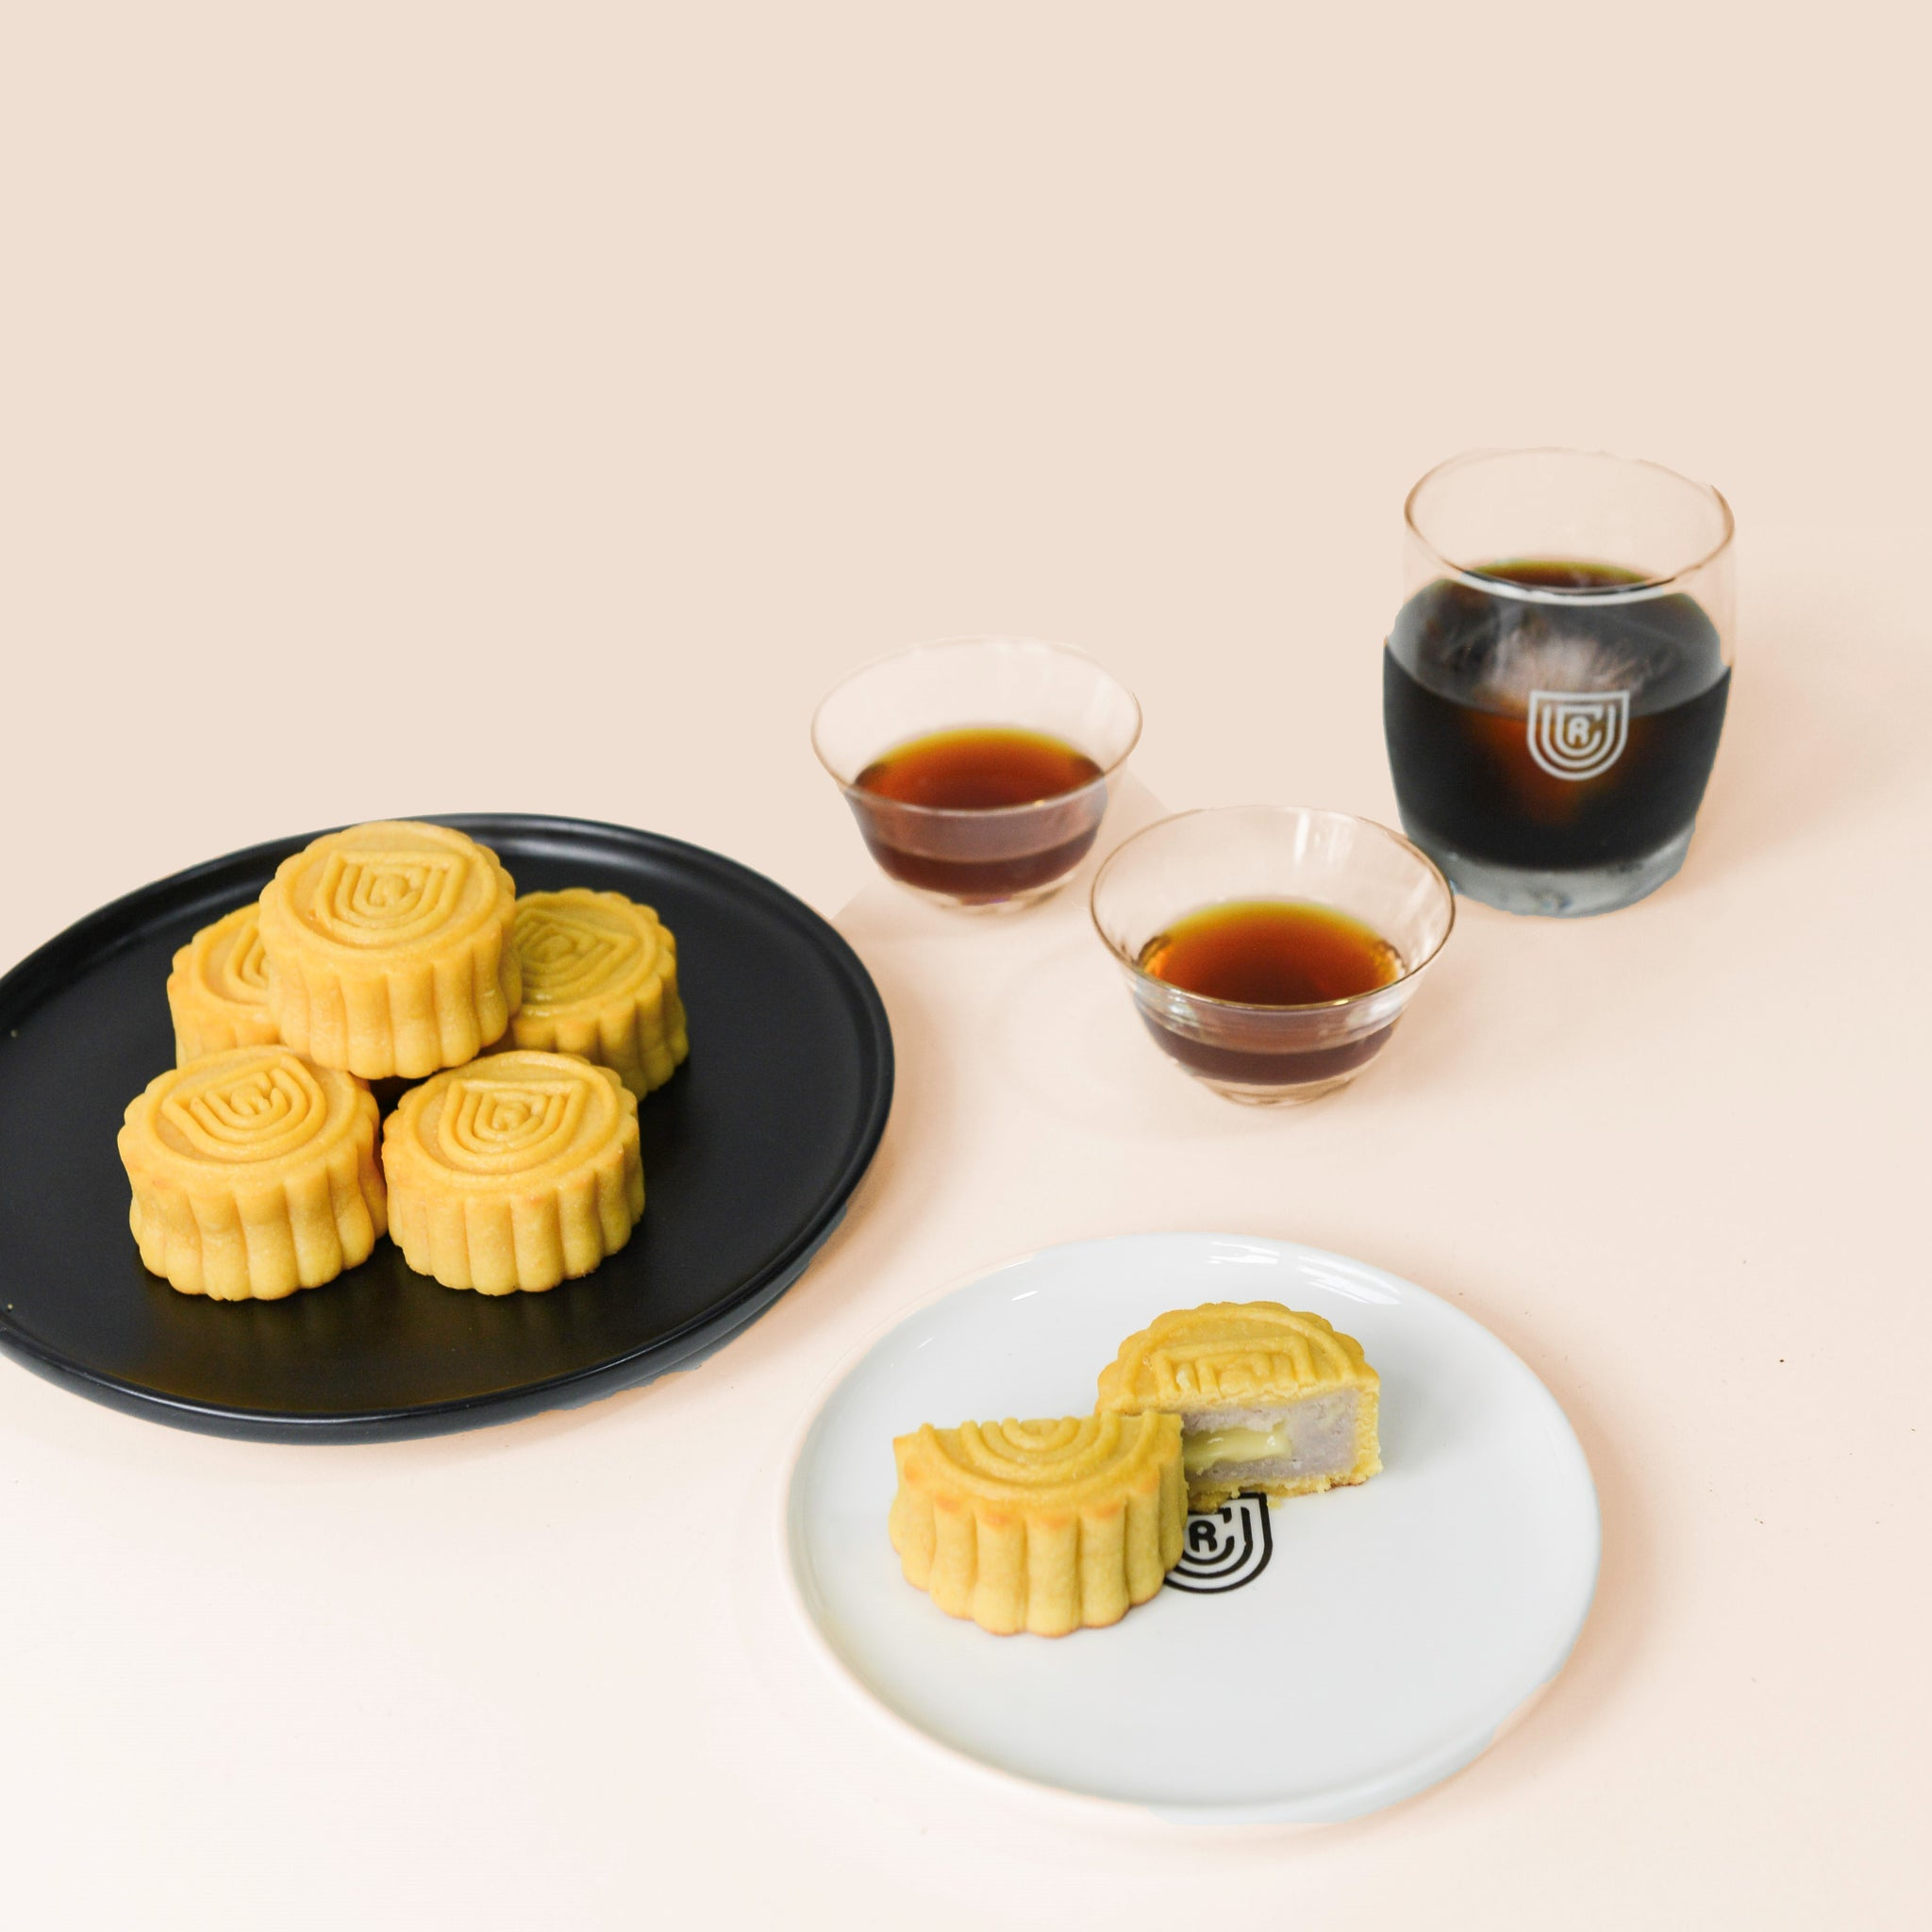 UCR x Mr. Taro Mid-Autumn Mooncake & Coffee Boxset